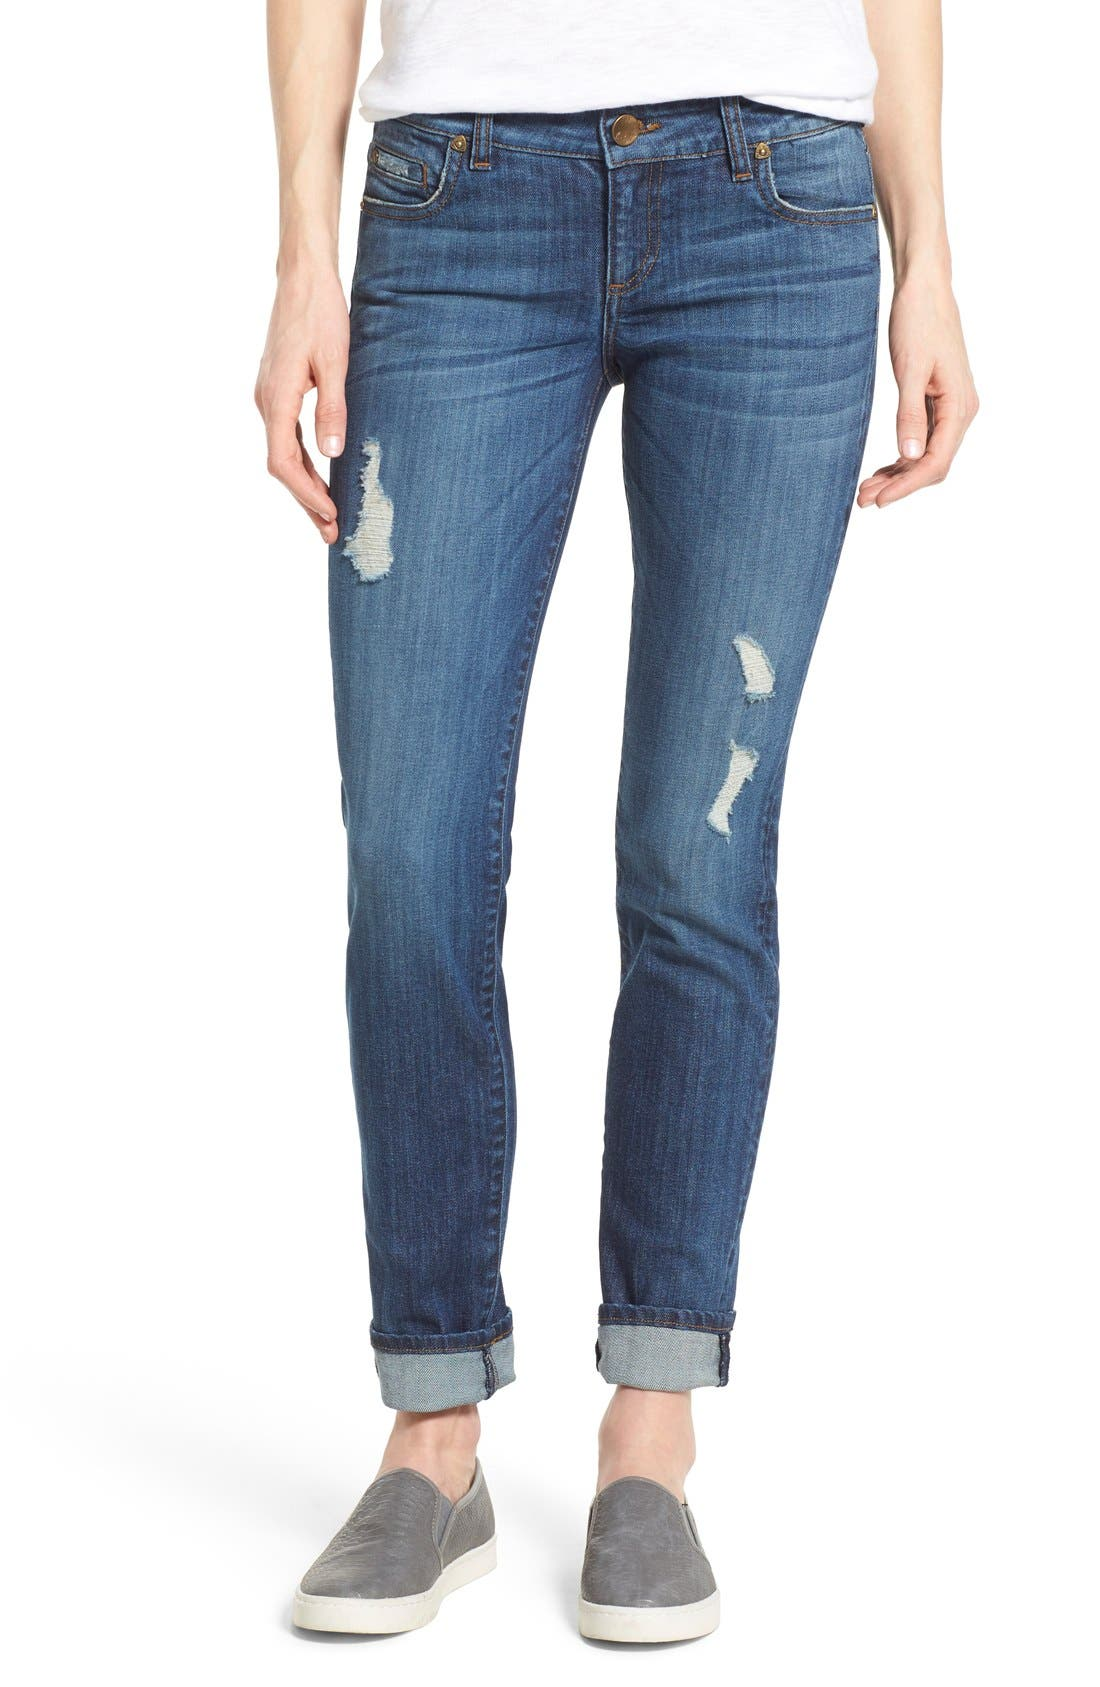 Alternate Image 1 Selected - KUT from the Kloth 'Catherine' Distressed Stretch Boyfriend Jeans (Yearn) (Regular & Petite)